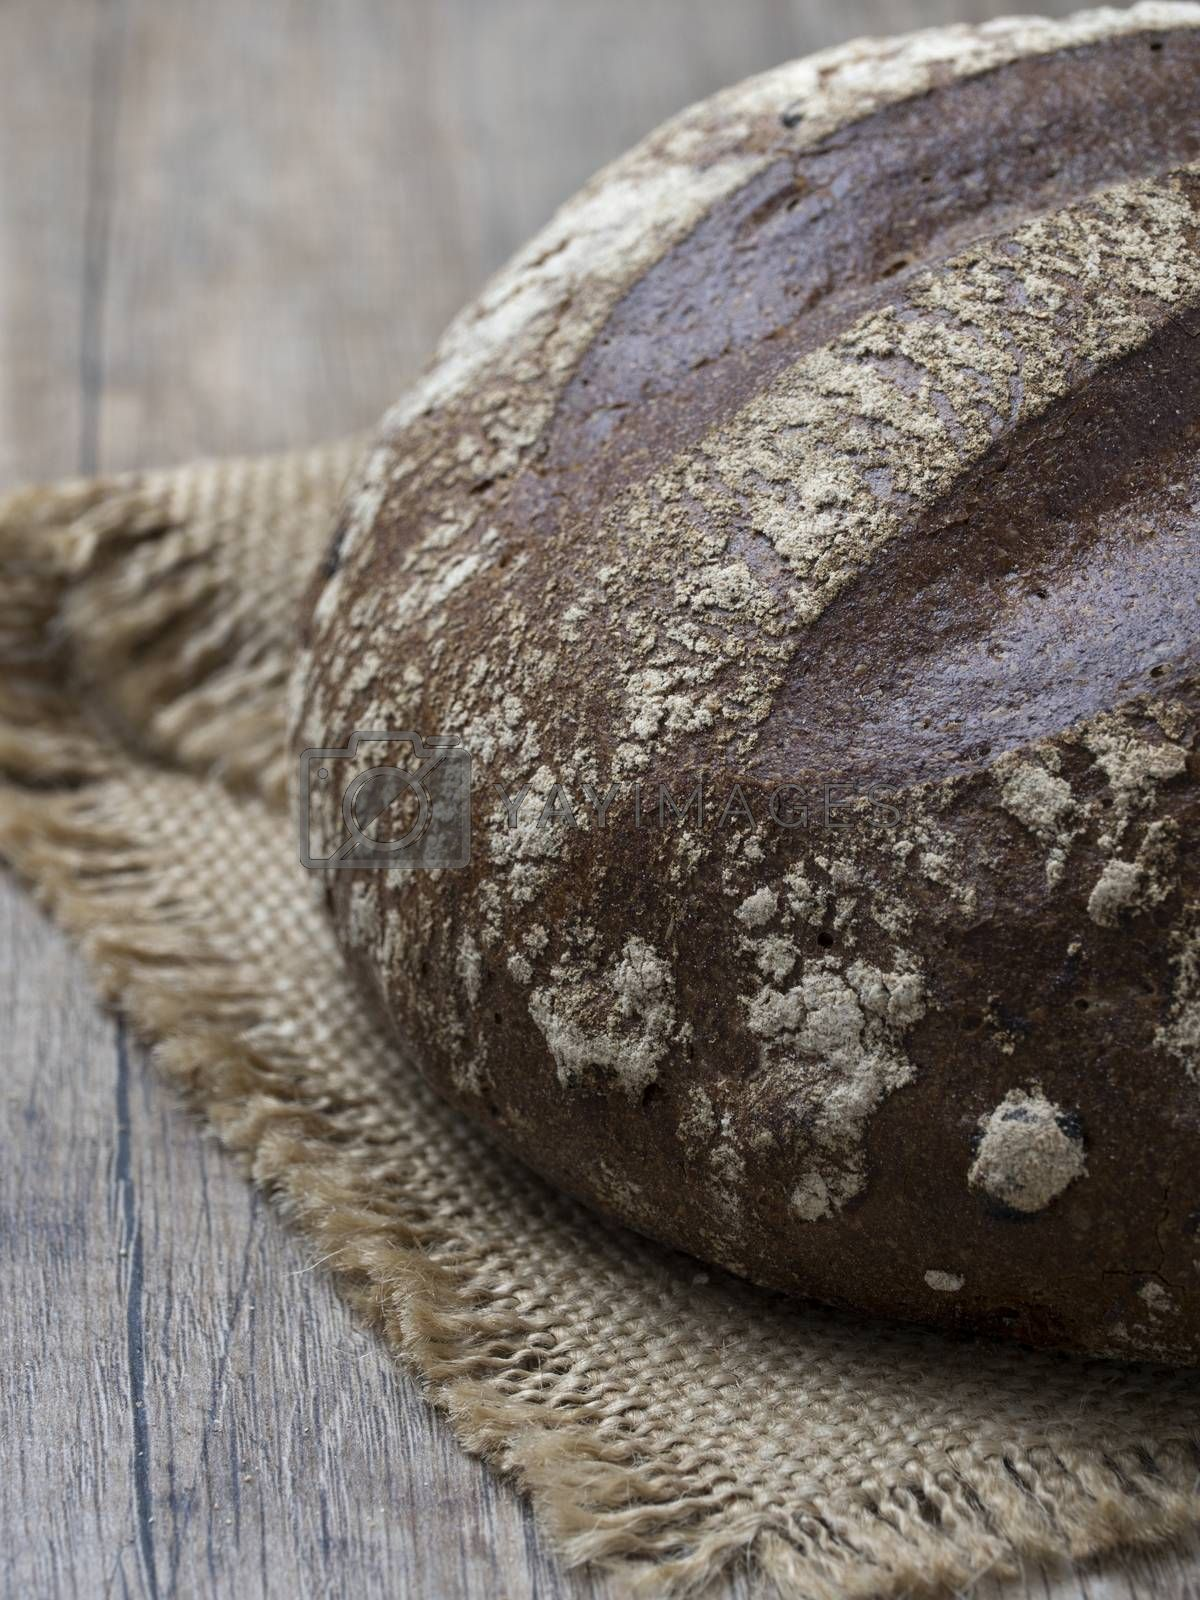 Royalty free image of Round loaf of freshly backed sourdough bread on wooden backgroun by phortcach